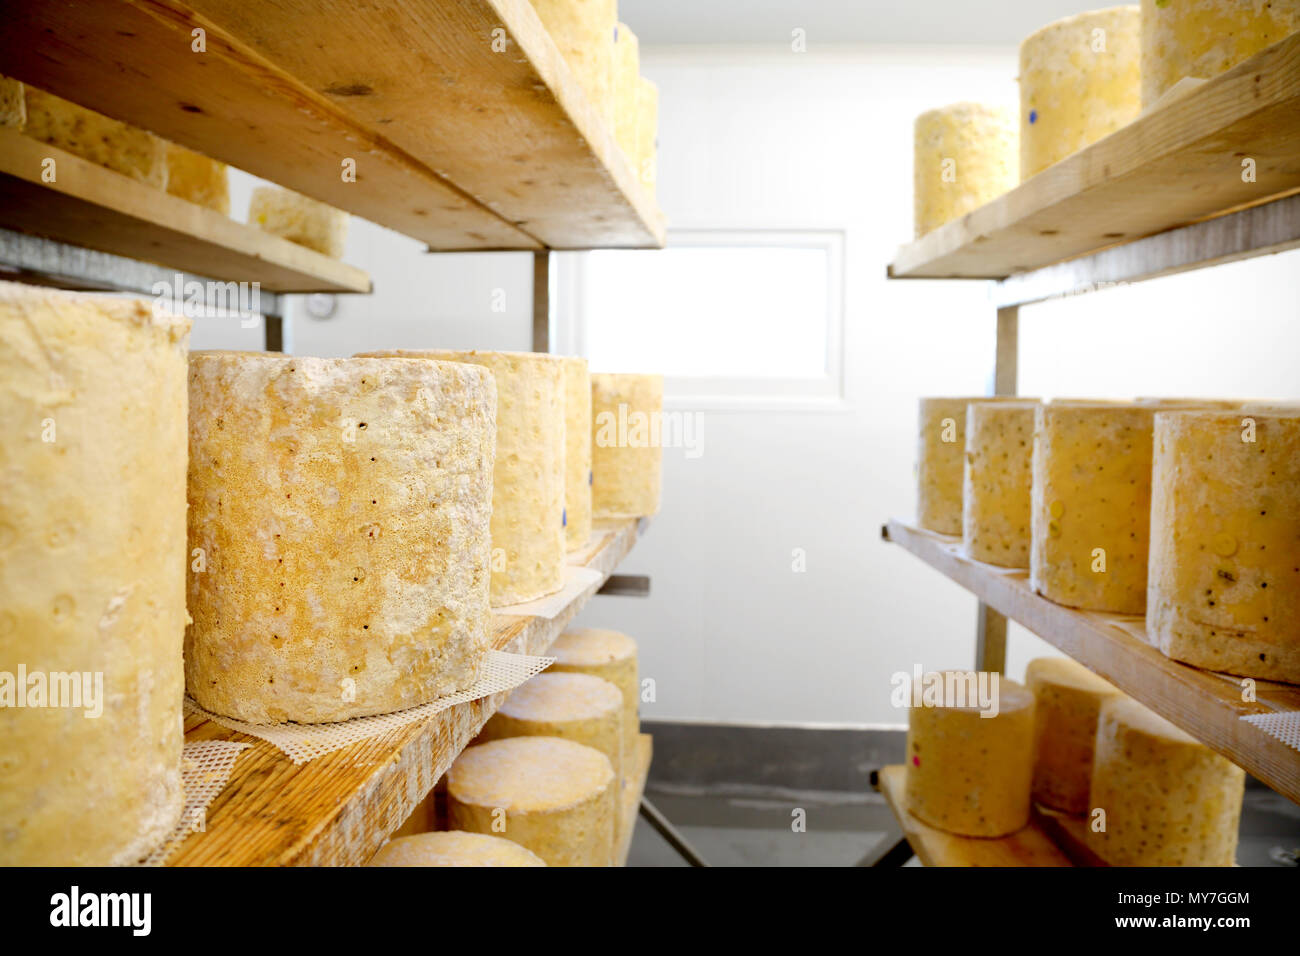 Shelves with large wheels of stilton cheese maturing - Stock Image